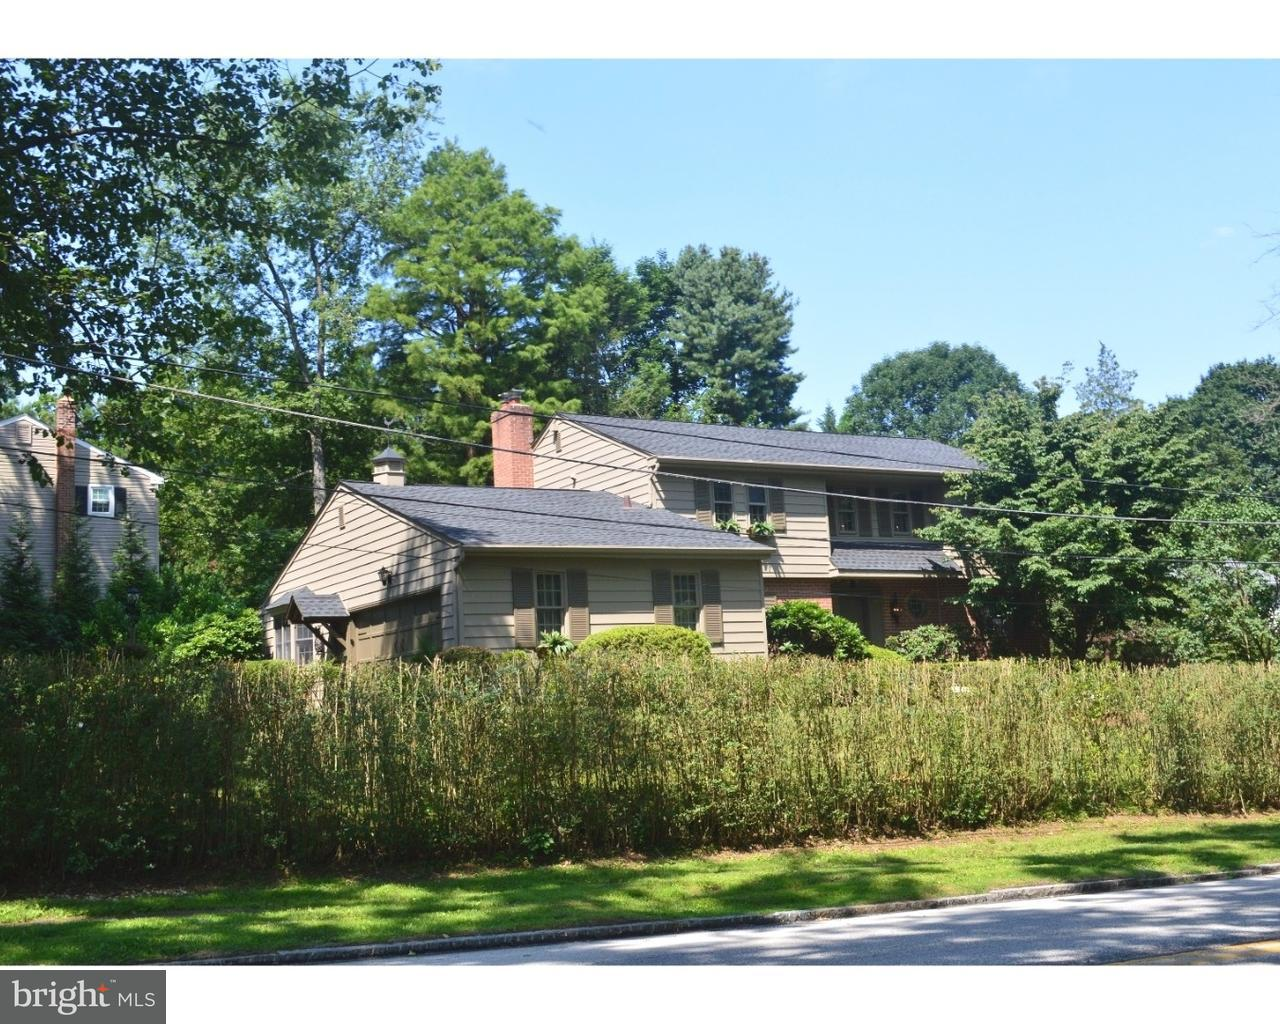 1 W Virginia Avenue West Chester Boro, PA 19380